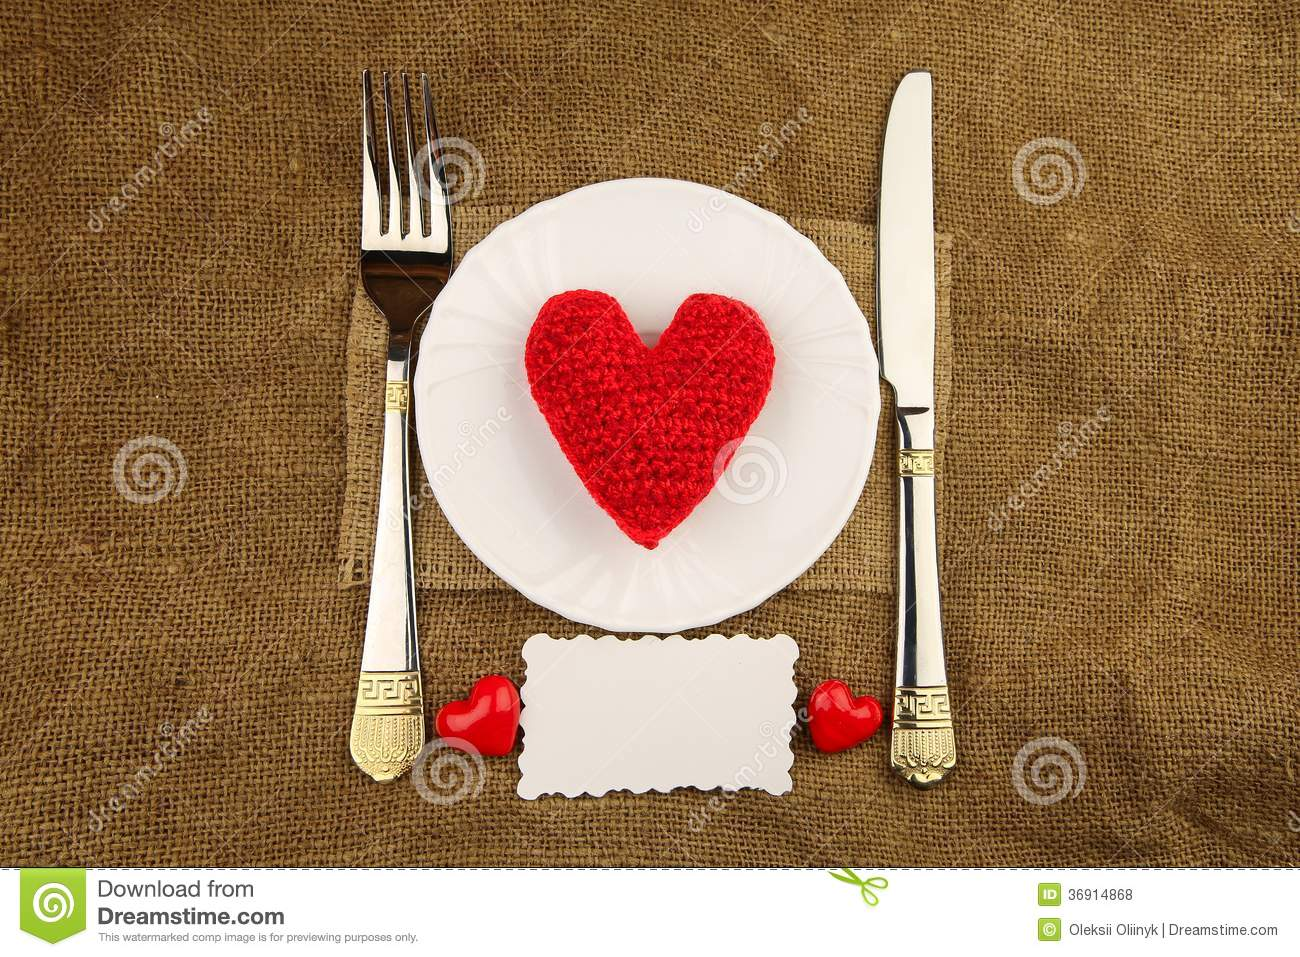 Download Valentine's Dinner With Handmade Heart Stock Photo - Image of circle, china: 36914868